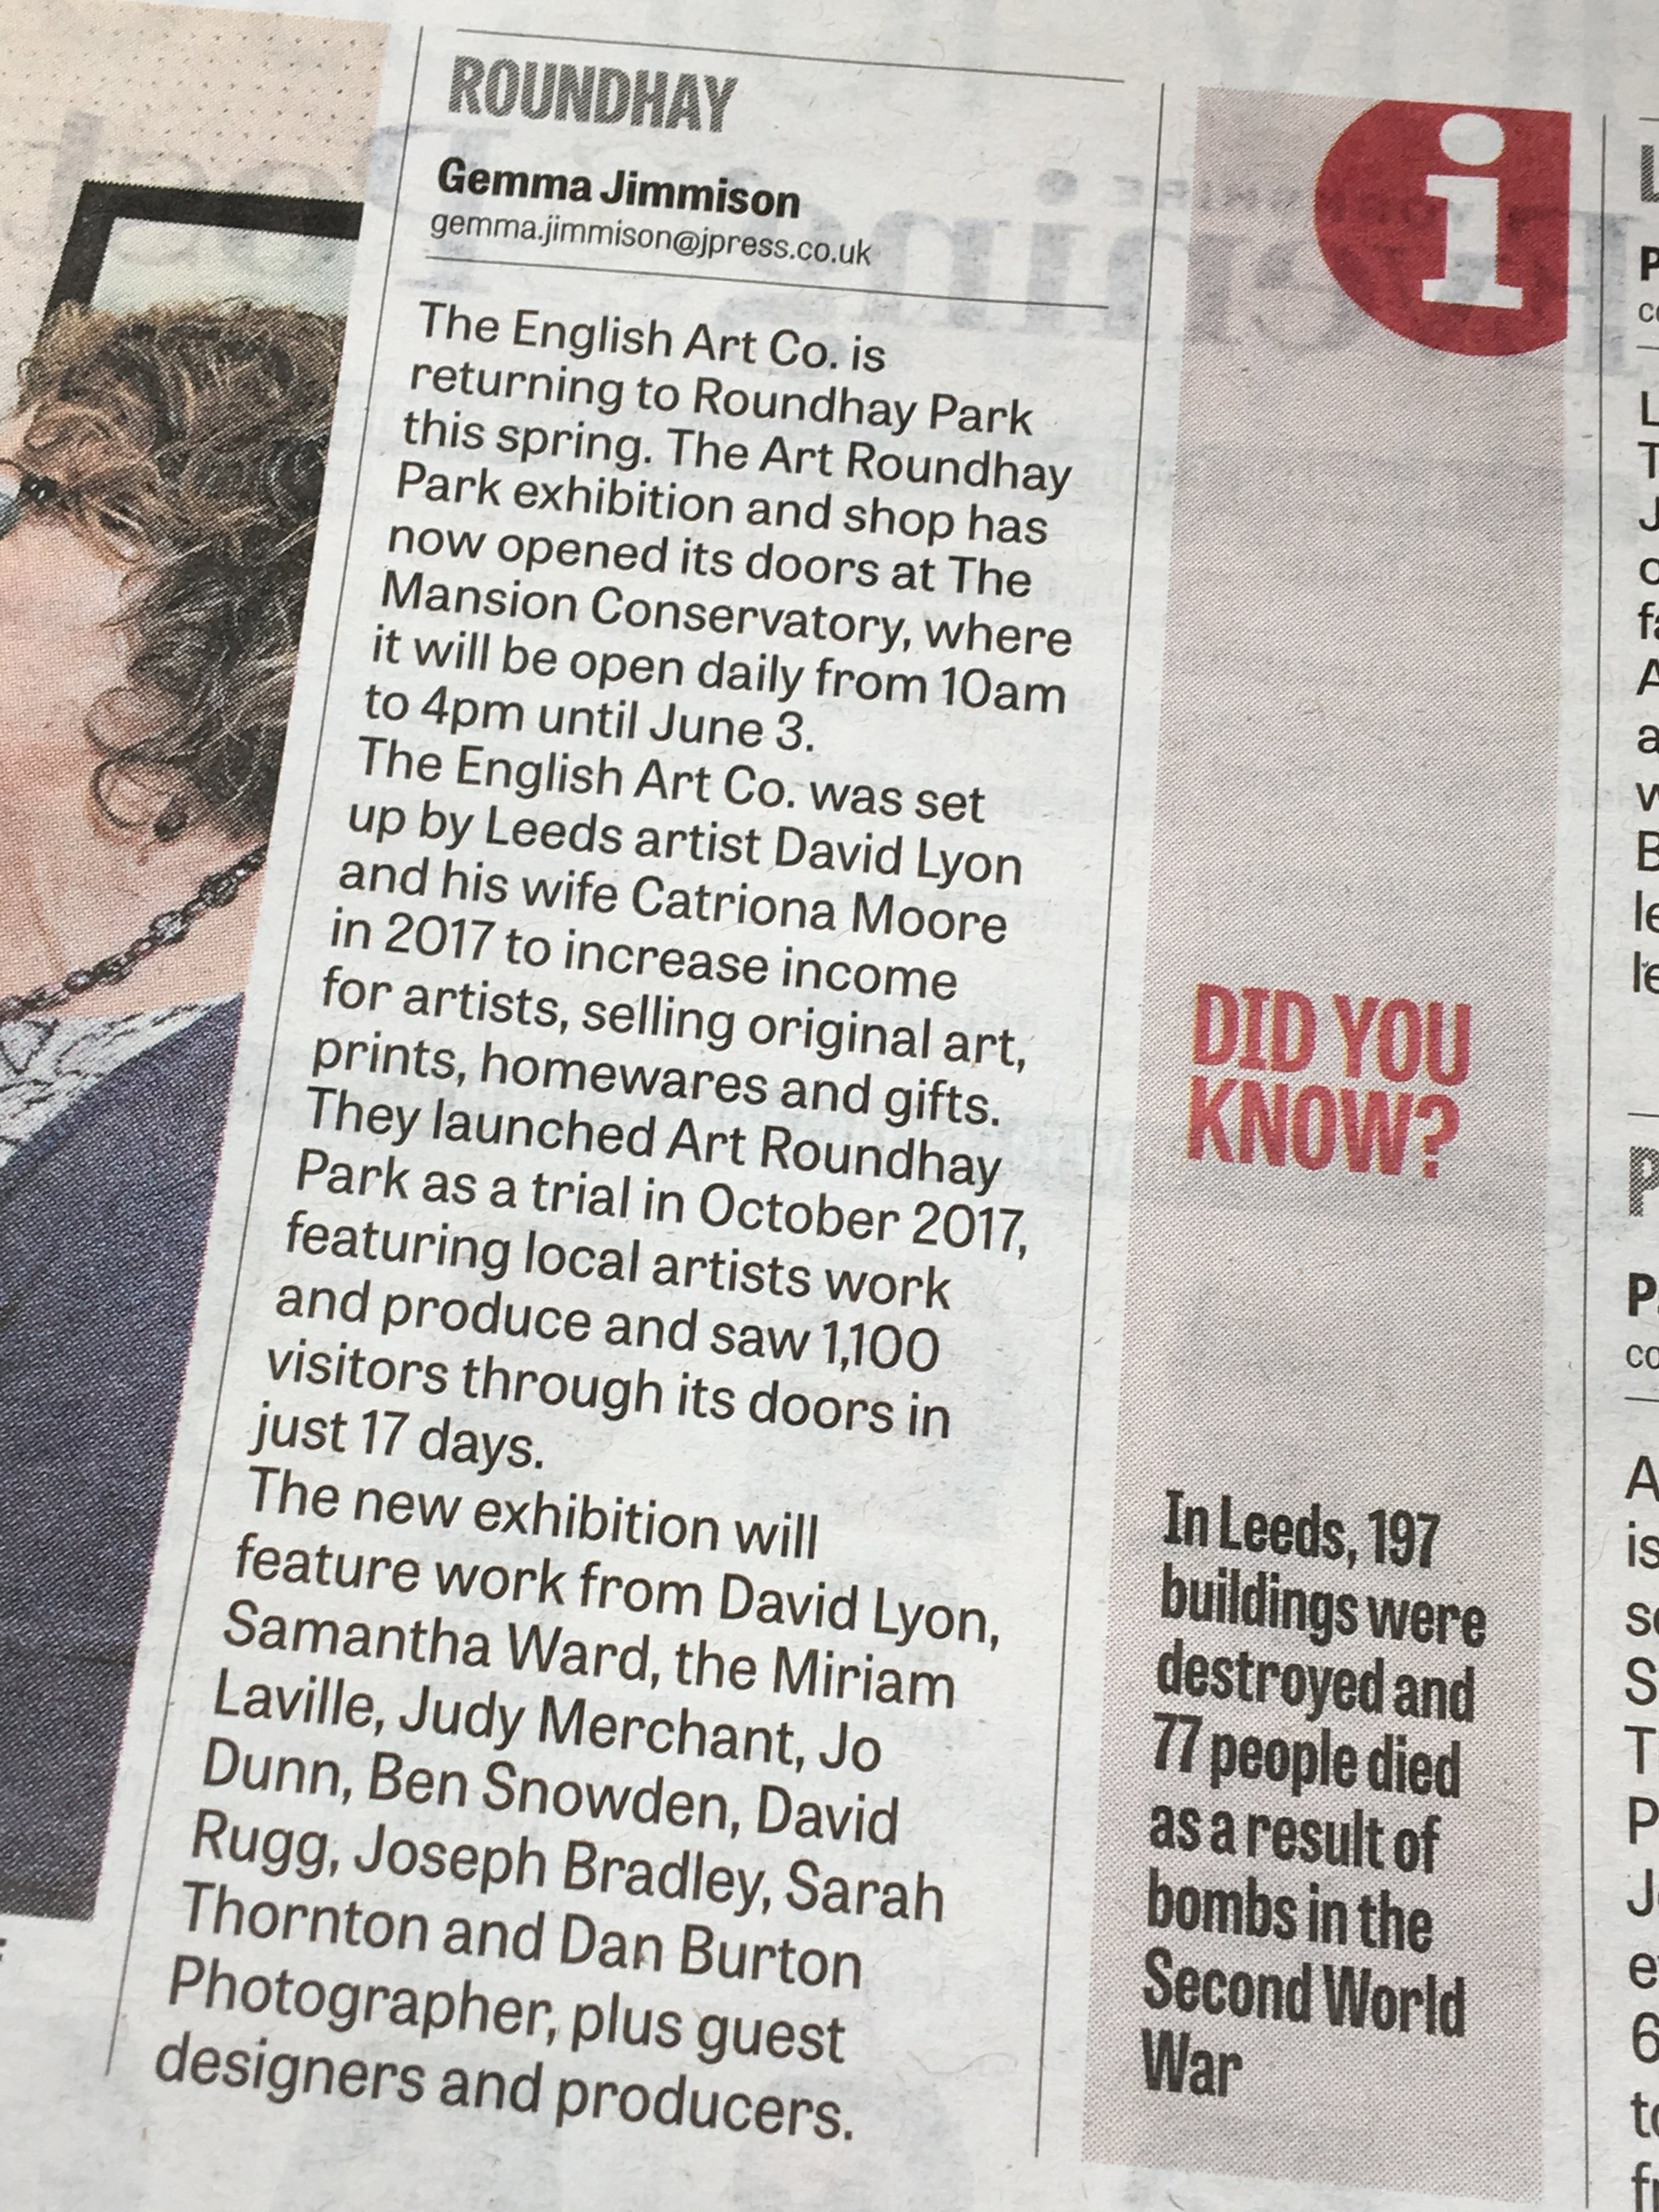 YORKSHIRE EVENING POST MAY 2018